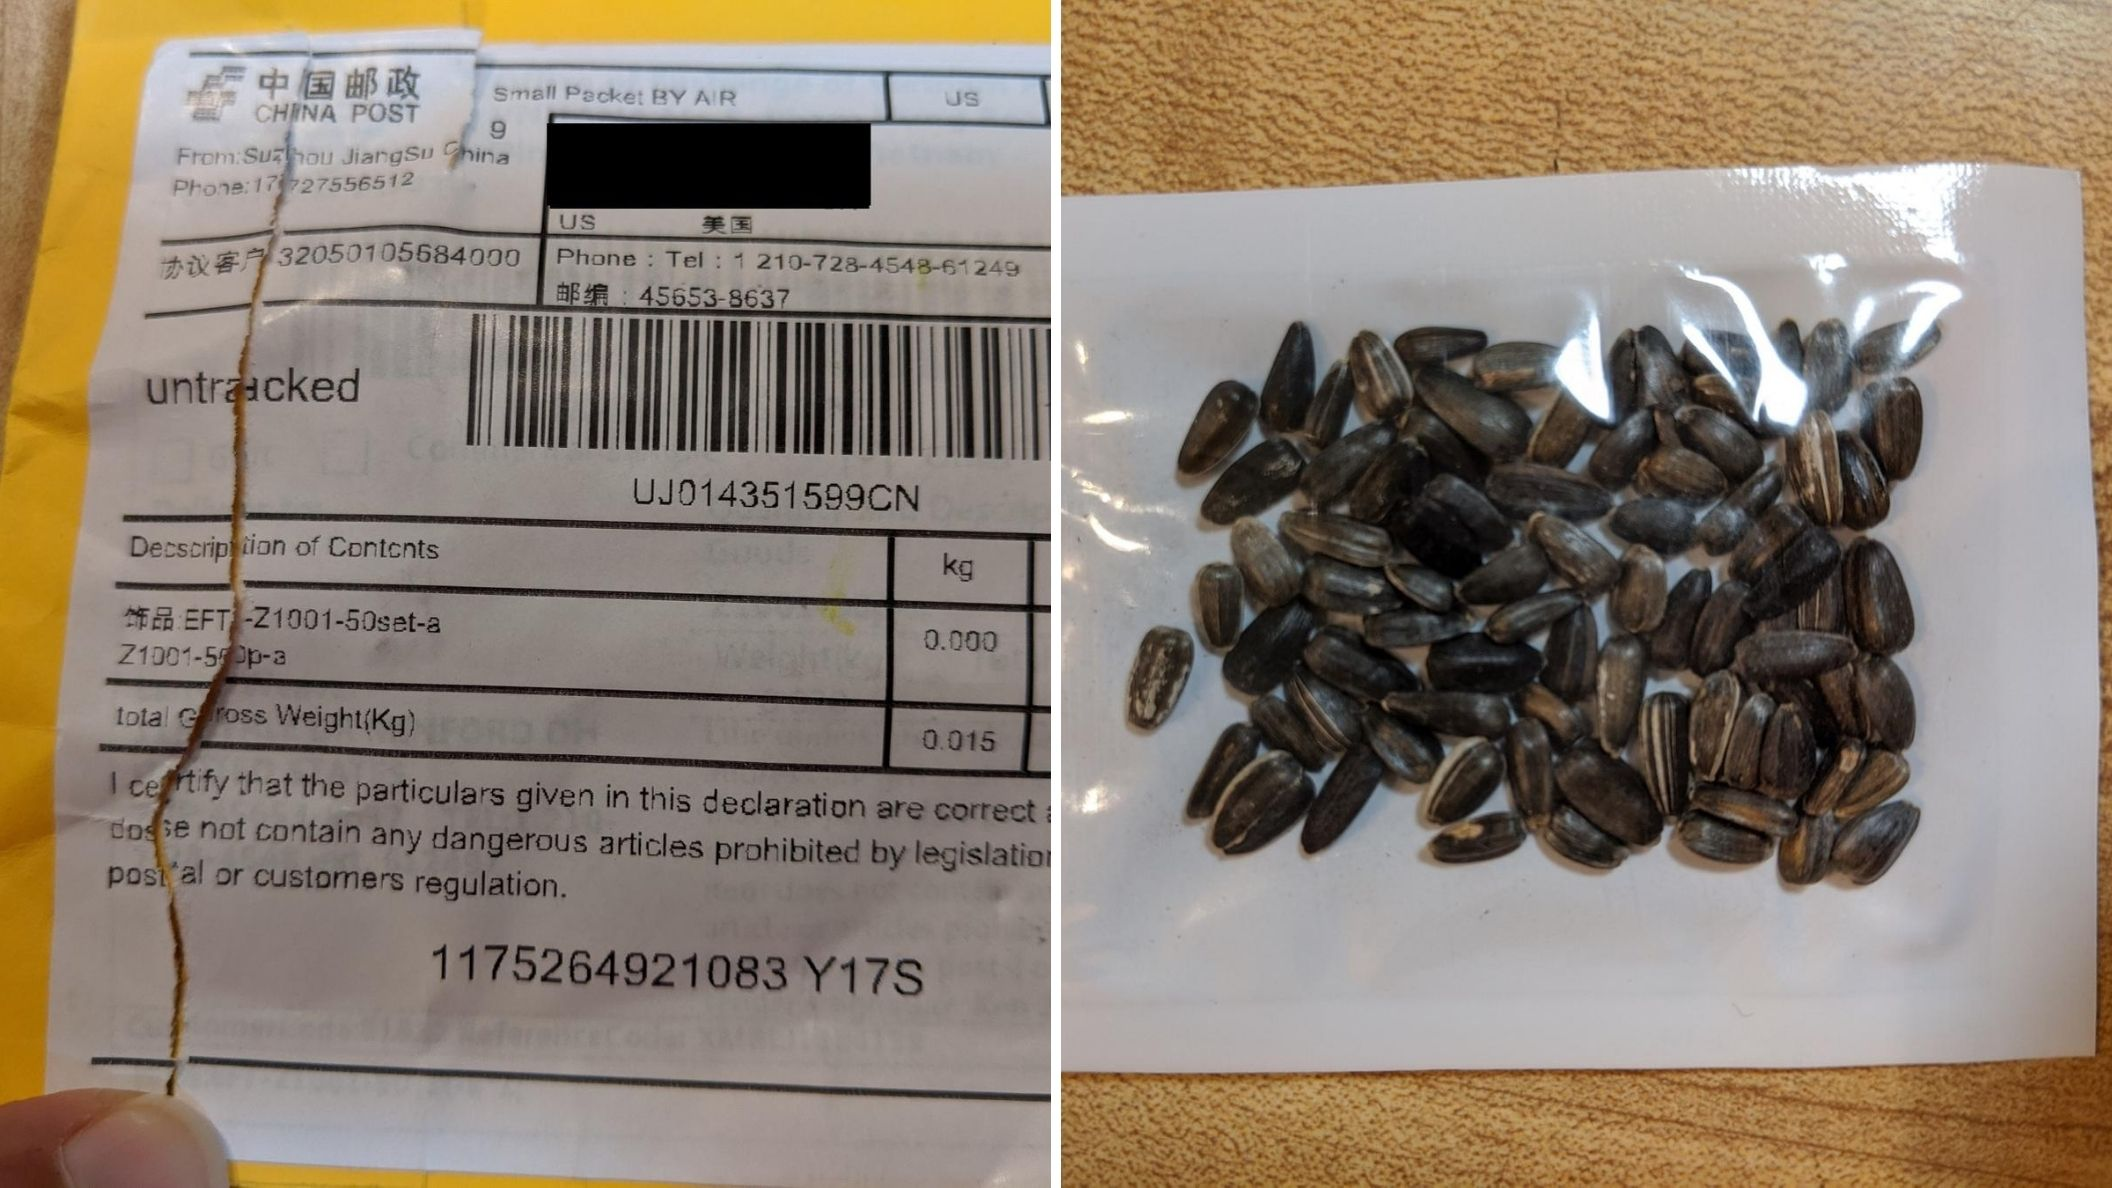 Unsolicited seeds